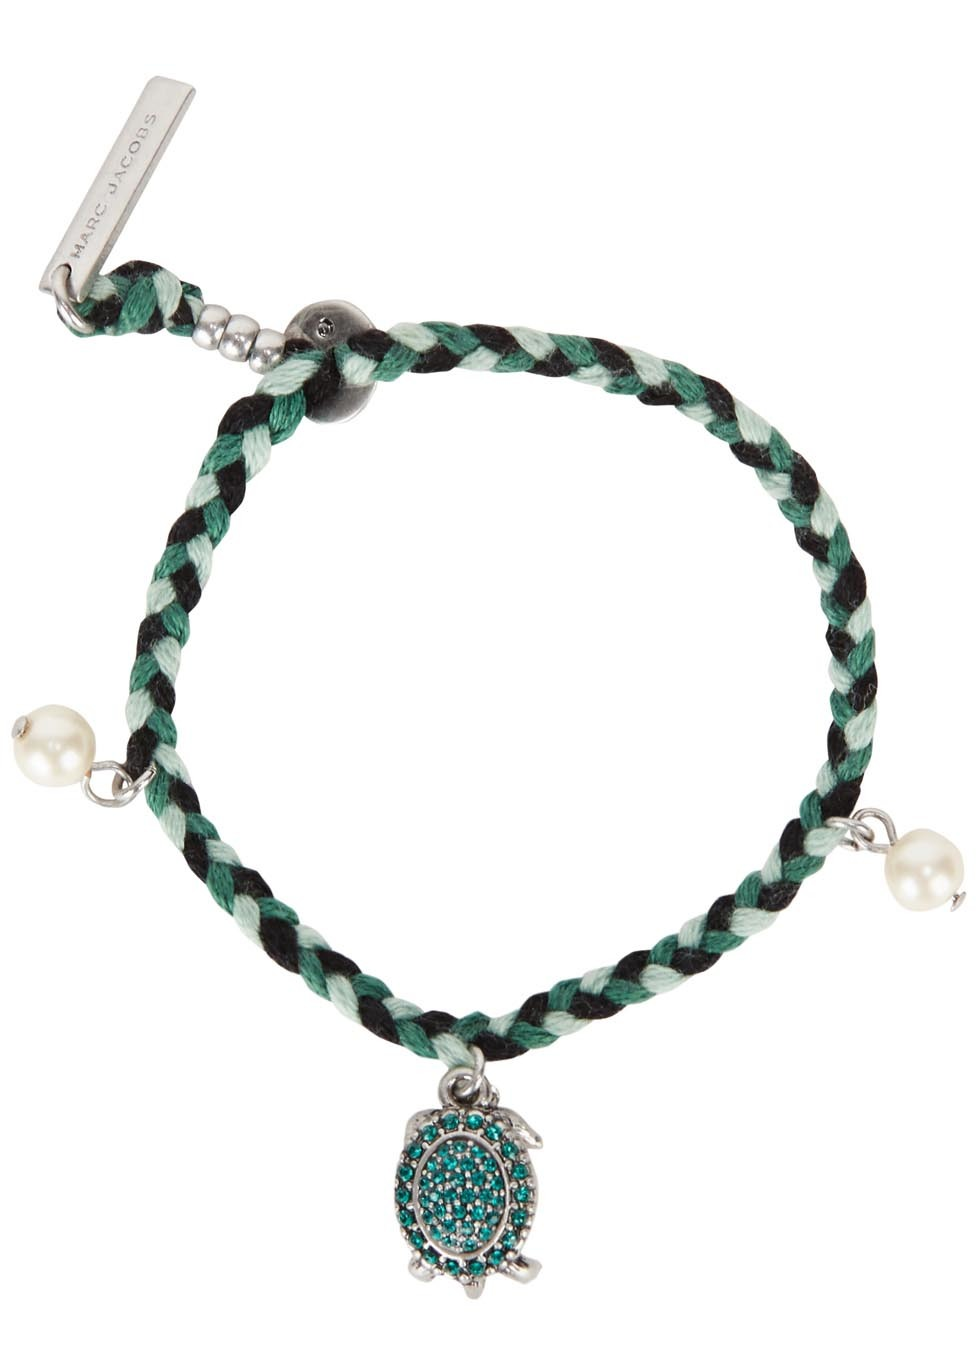 Turtle Charm Cotton Friendship Bracelet - predominant colour: dark green; occasions: evening, creative work; style: charm; size: standard; material: chain/metal; finish: plain; embellishment: chain/metal; season: s/s 2016; wardrobe: highlight